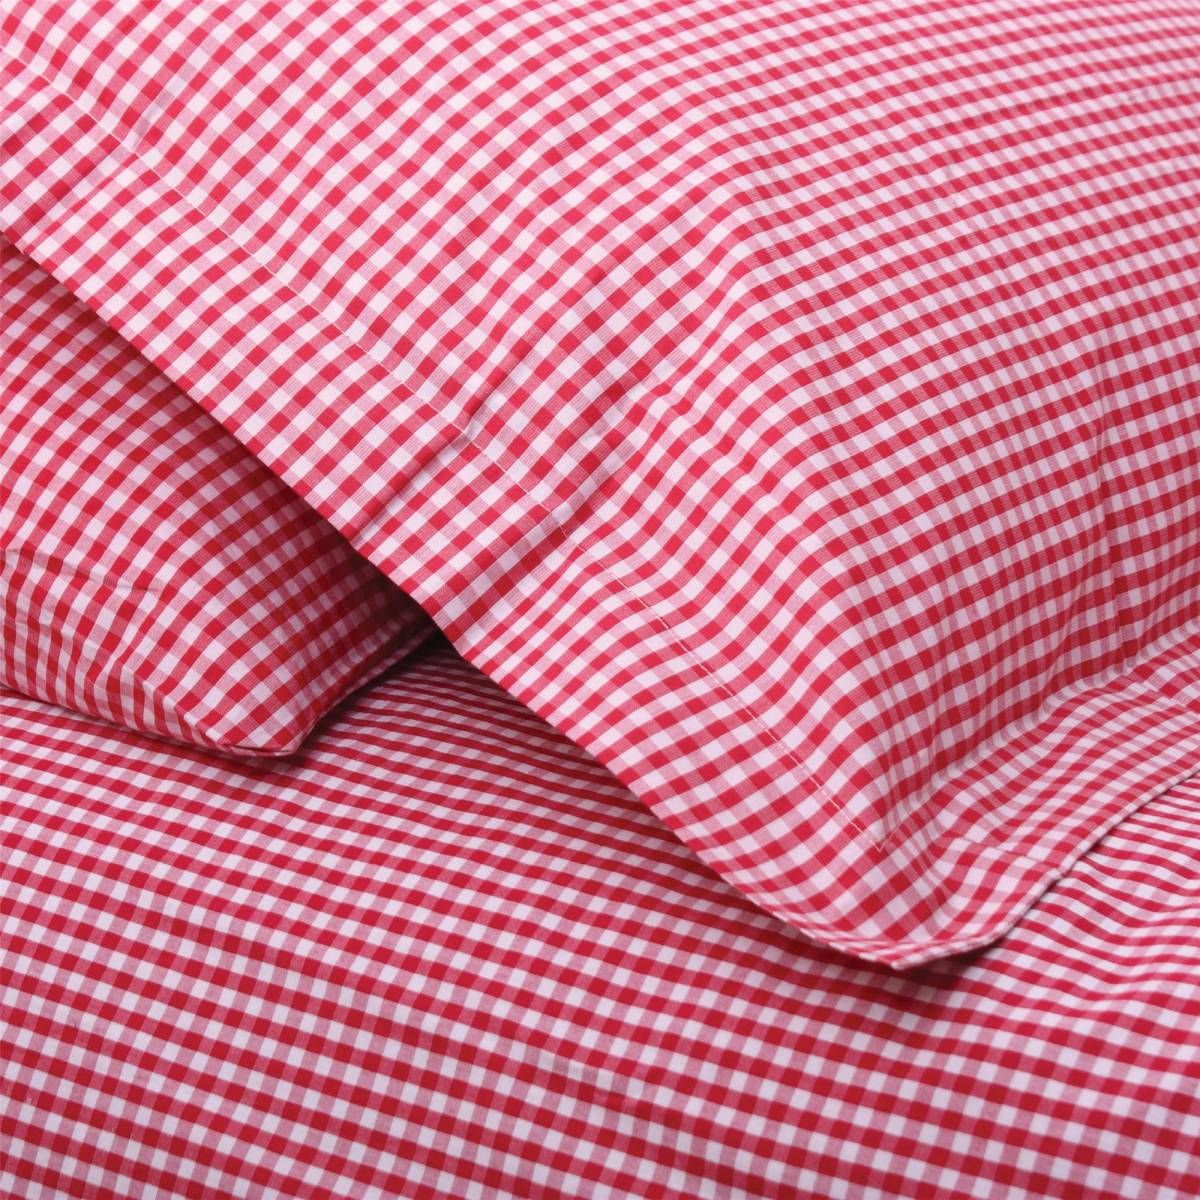 Pin by Mary Mc Namara on Dream houses | Pinterest | Red gingham ... : red gingham quilt - Adamdwight.com